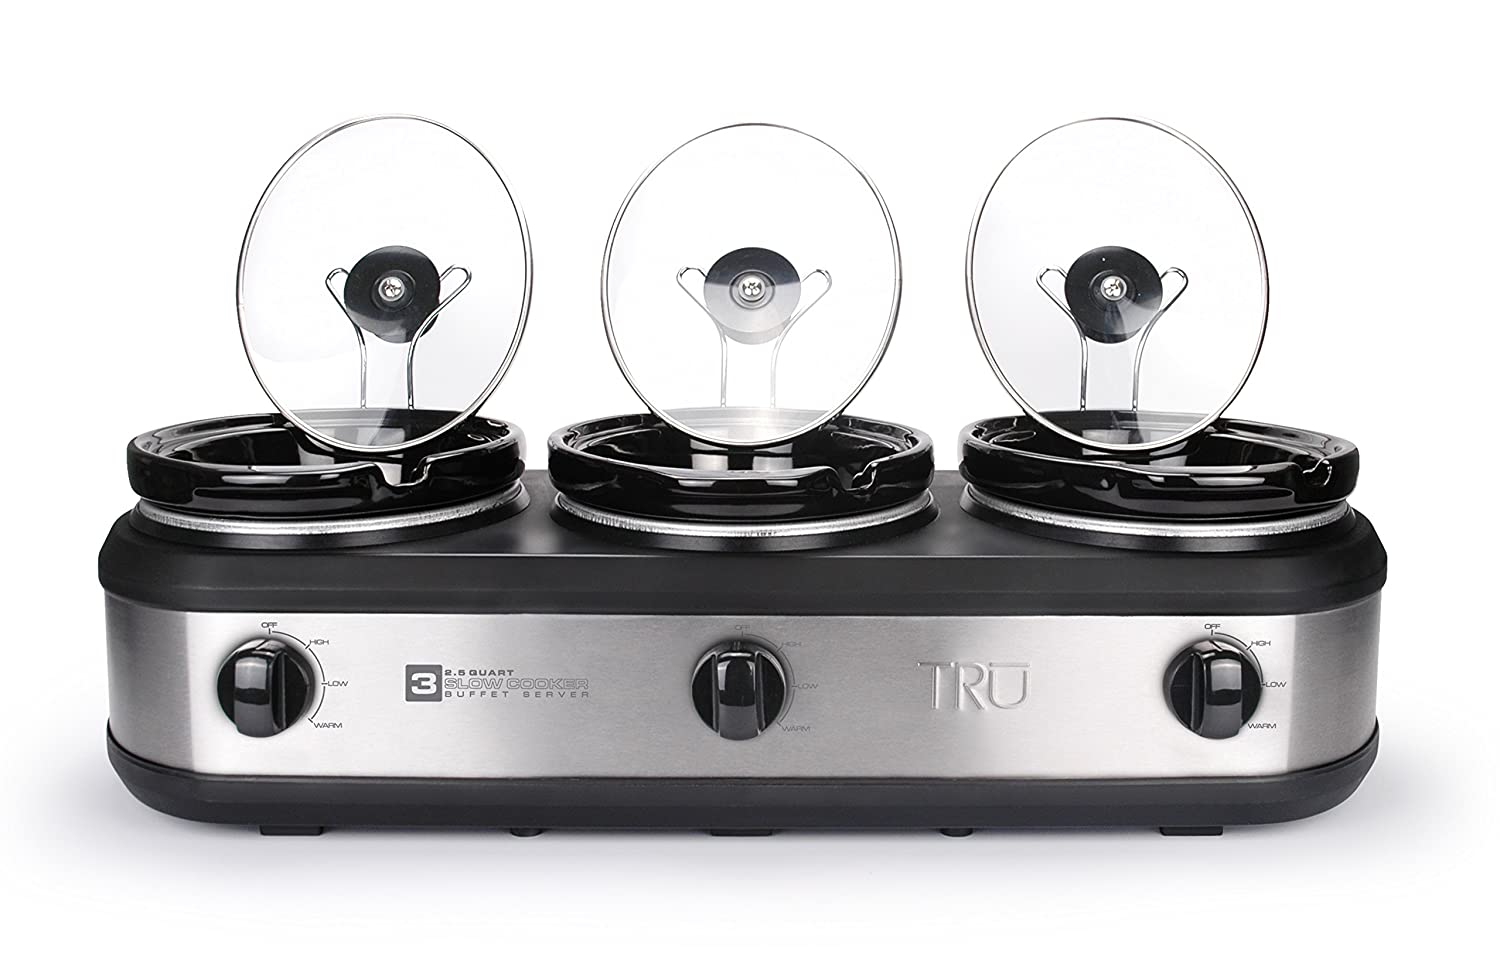 Tru BS-325LR Slow-Cookers